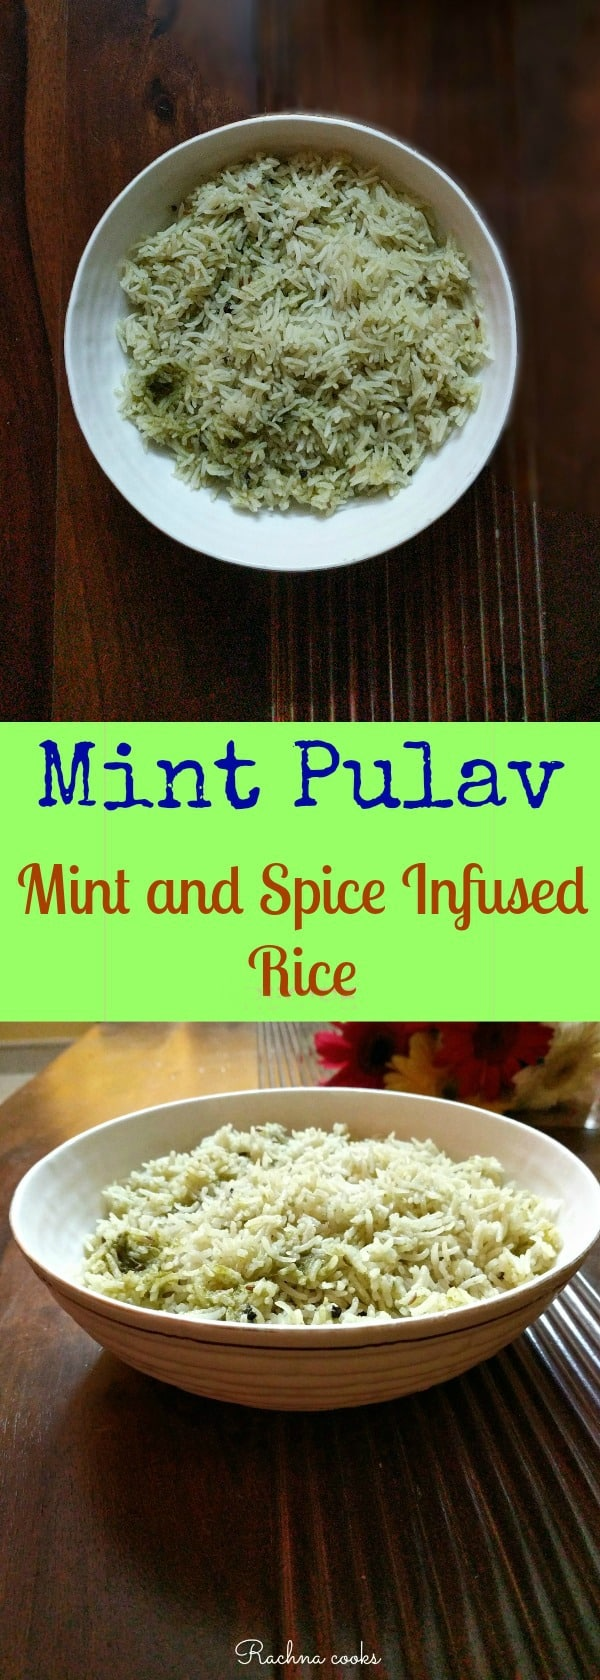 mint pulav mint rice